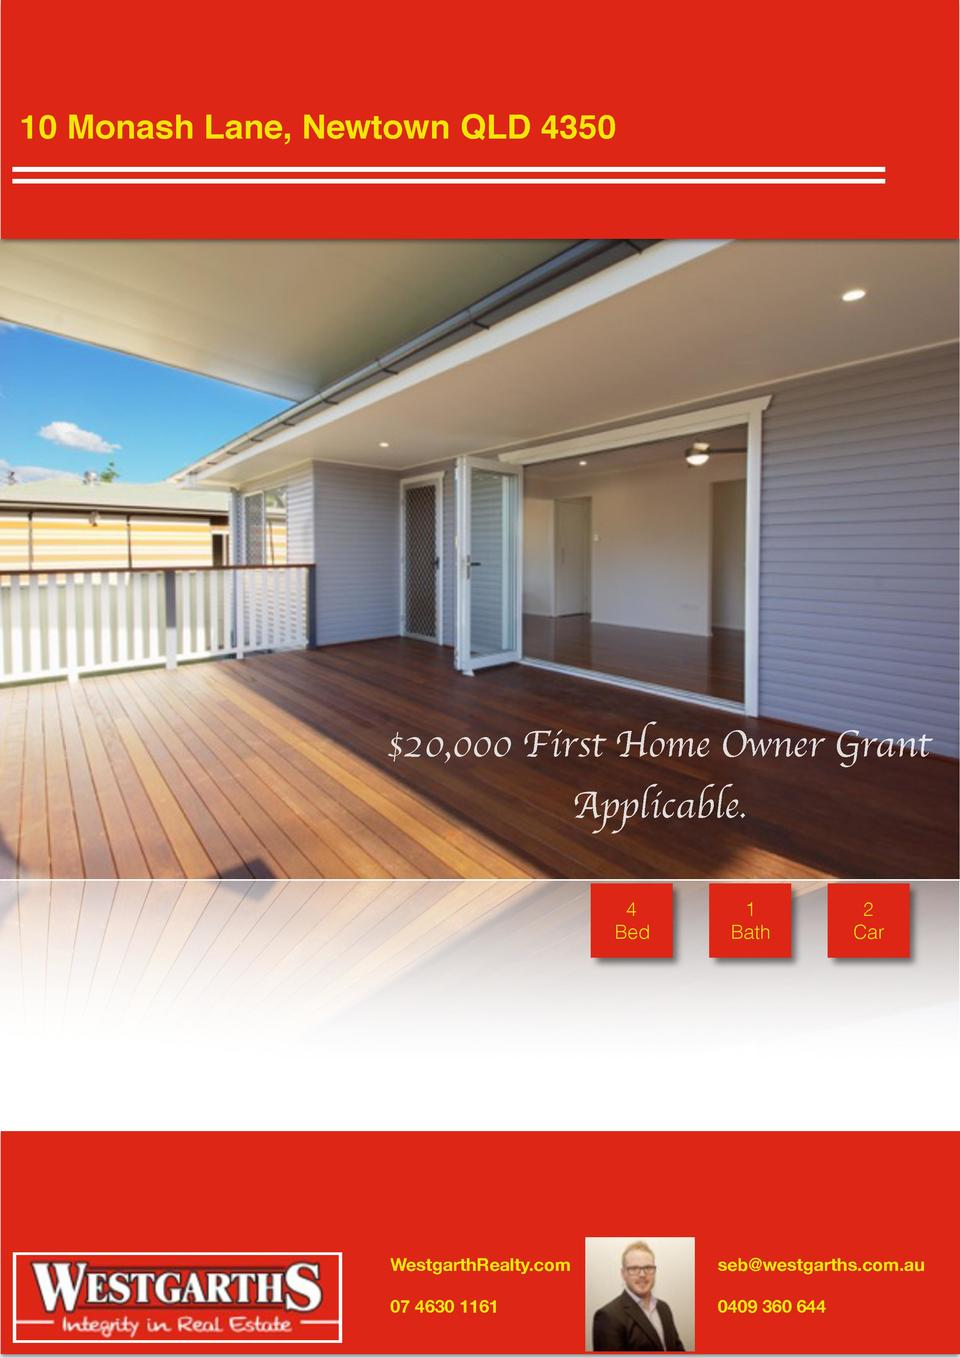 10 Monash Lane, Newtown QLD 4350   20,000 First Home Owner Grant Applicable. 4 Bed  1 Bath  2 Car  WestgarthRealty.com  se...